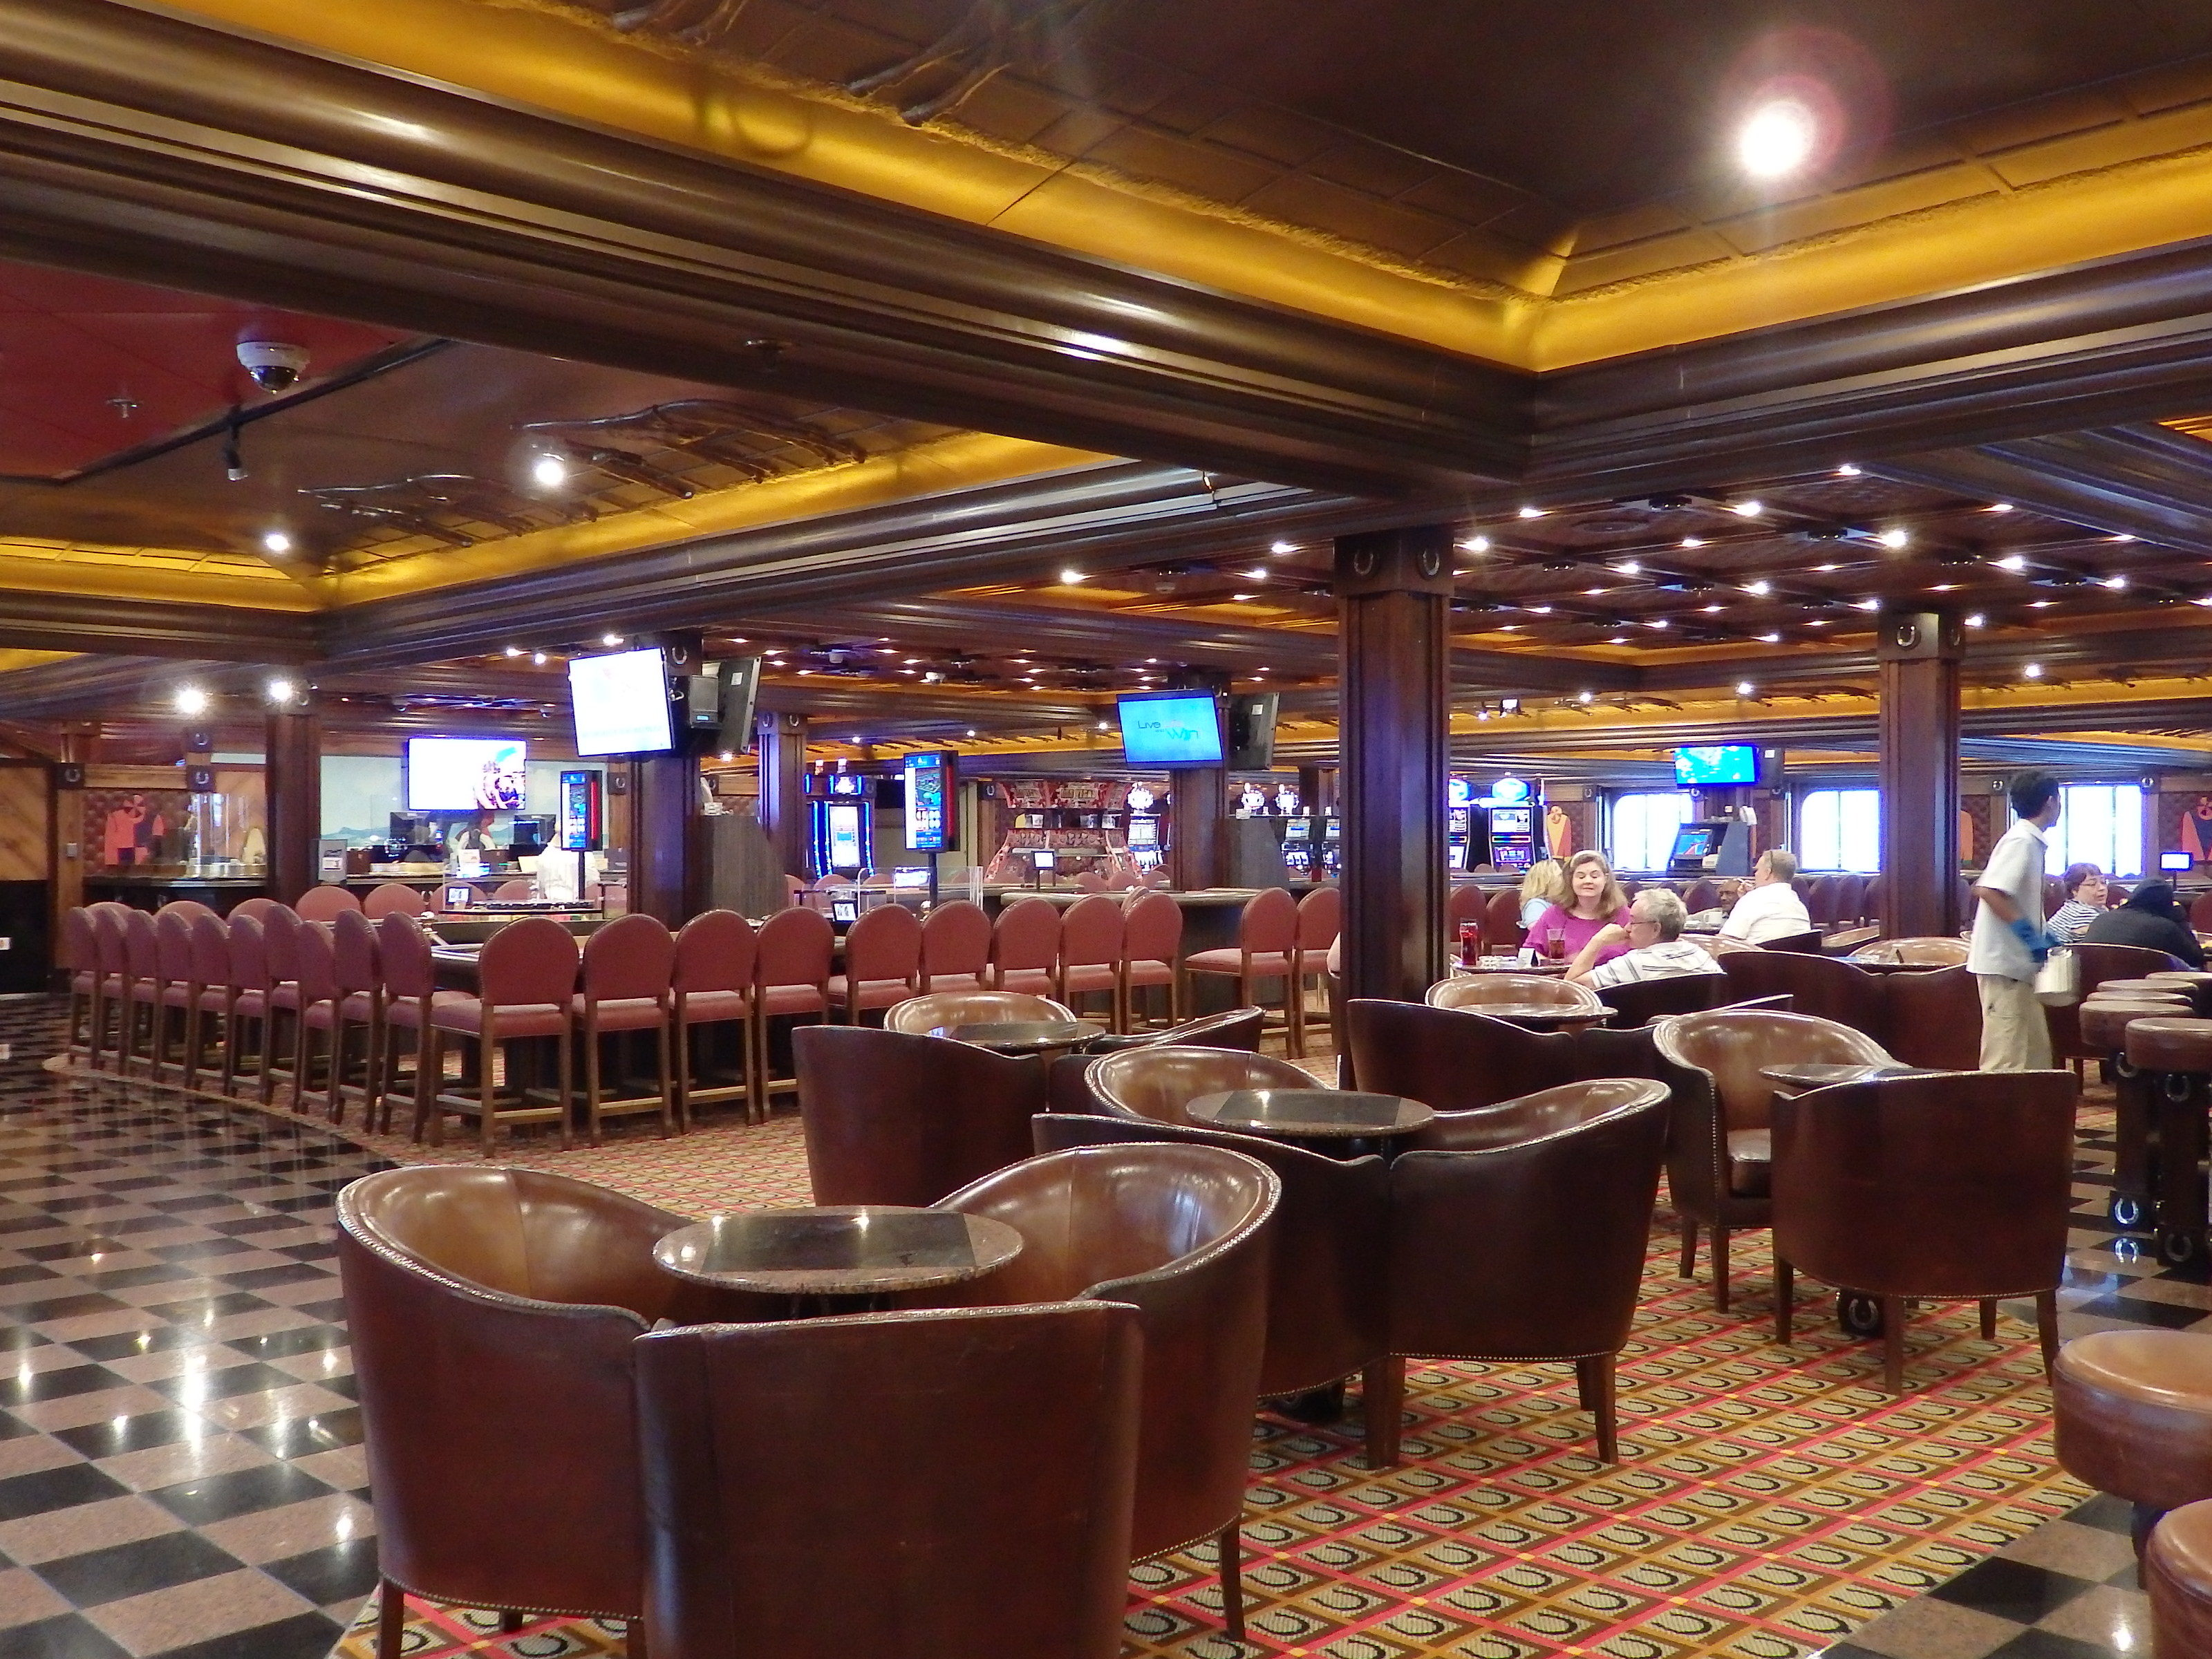 Mostly Good Cruise Carnival Pride Cruise Review